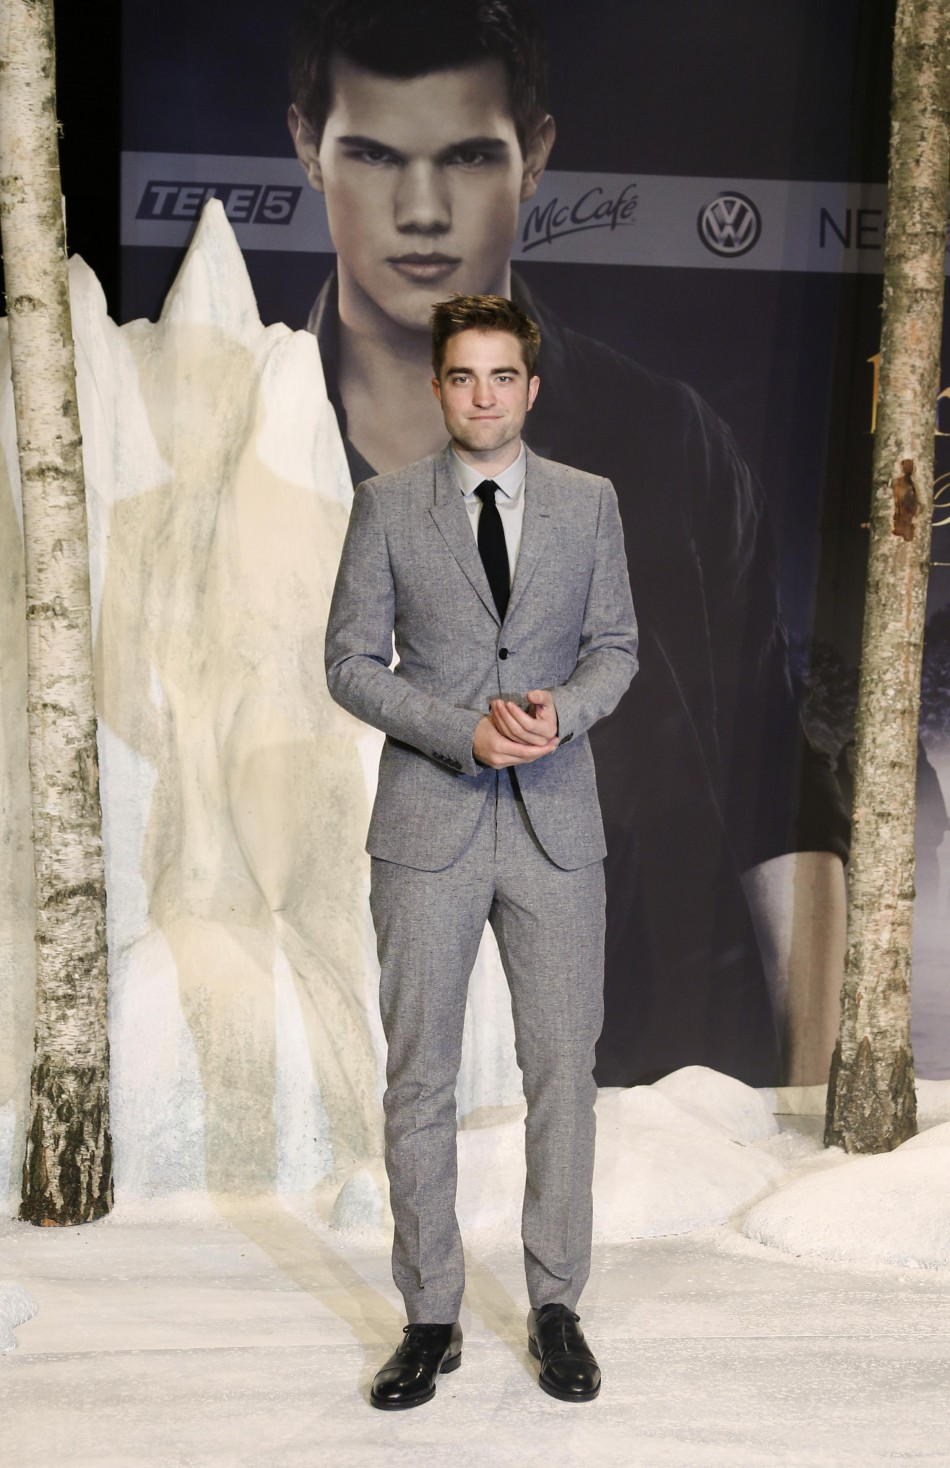 Pattinson poses for pictures before German premiere of The Twilight Saga Breaking Dawn Part 2 in Berlin